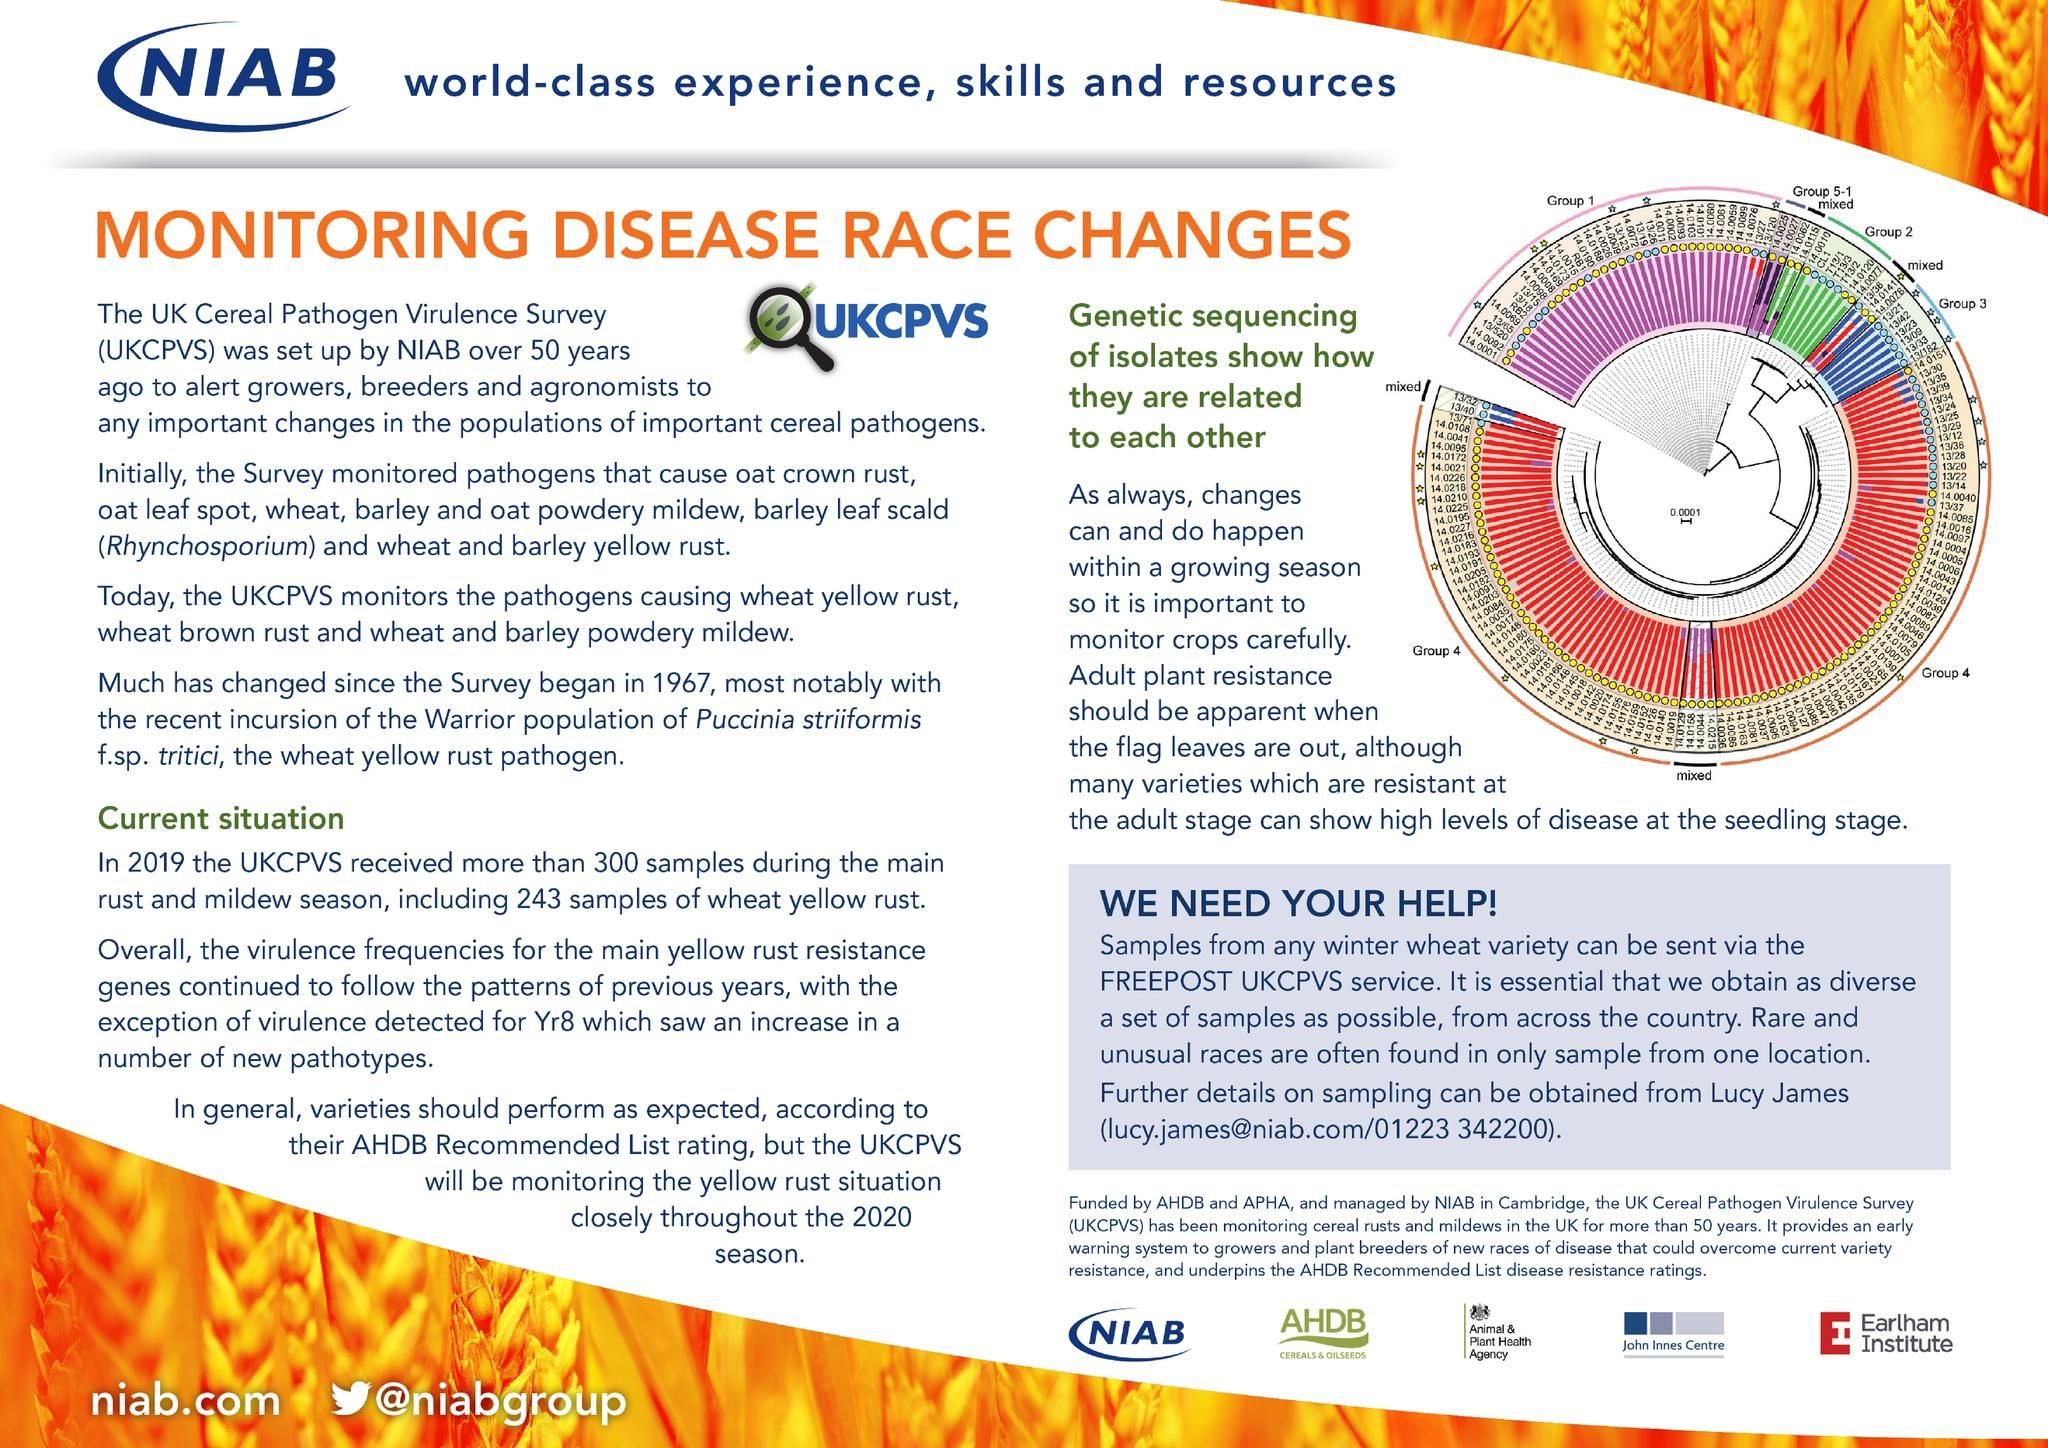 Monitoring disease race changes - poster